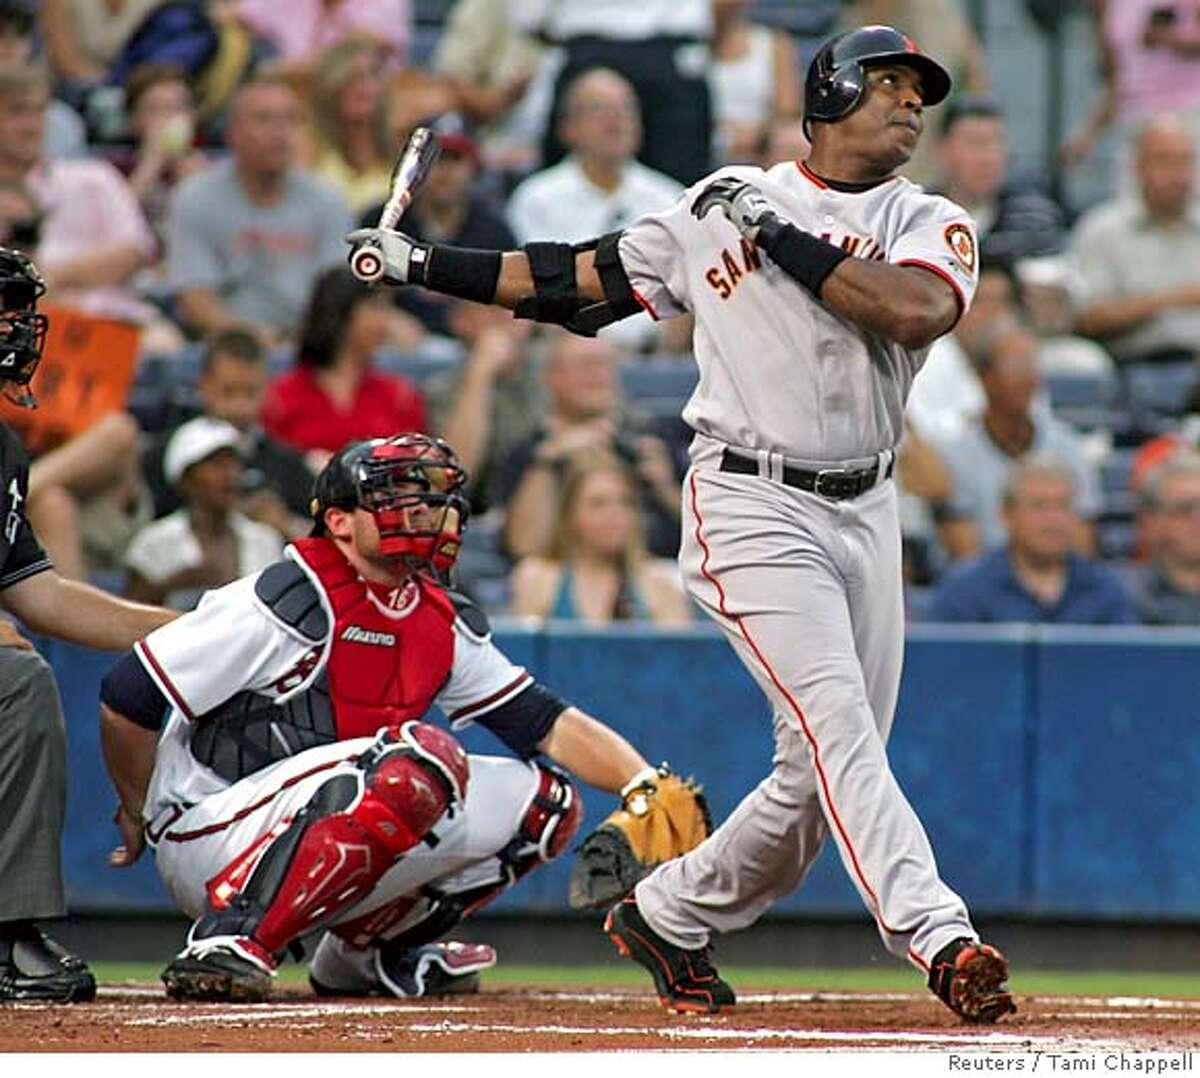 San Francisco Giants batter Barry Bonds watches his solo home run in the first inning with Atlanta Braves catcher Brian McCann (L) at their National League baseball game in Atlanta, Georgia, August 29, 2006. REUTERS/Tami Chappell (UNITED STATES)